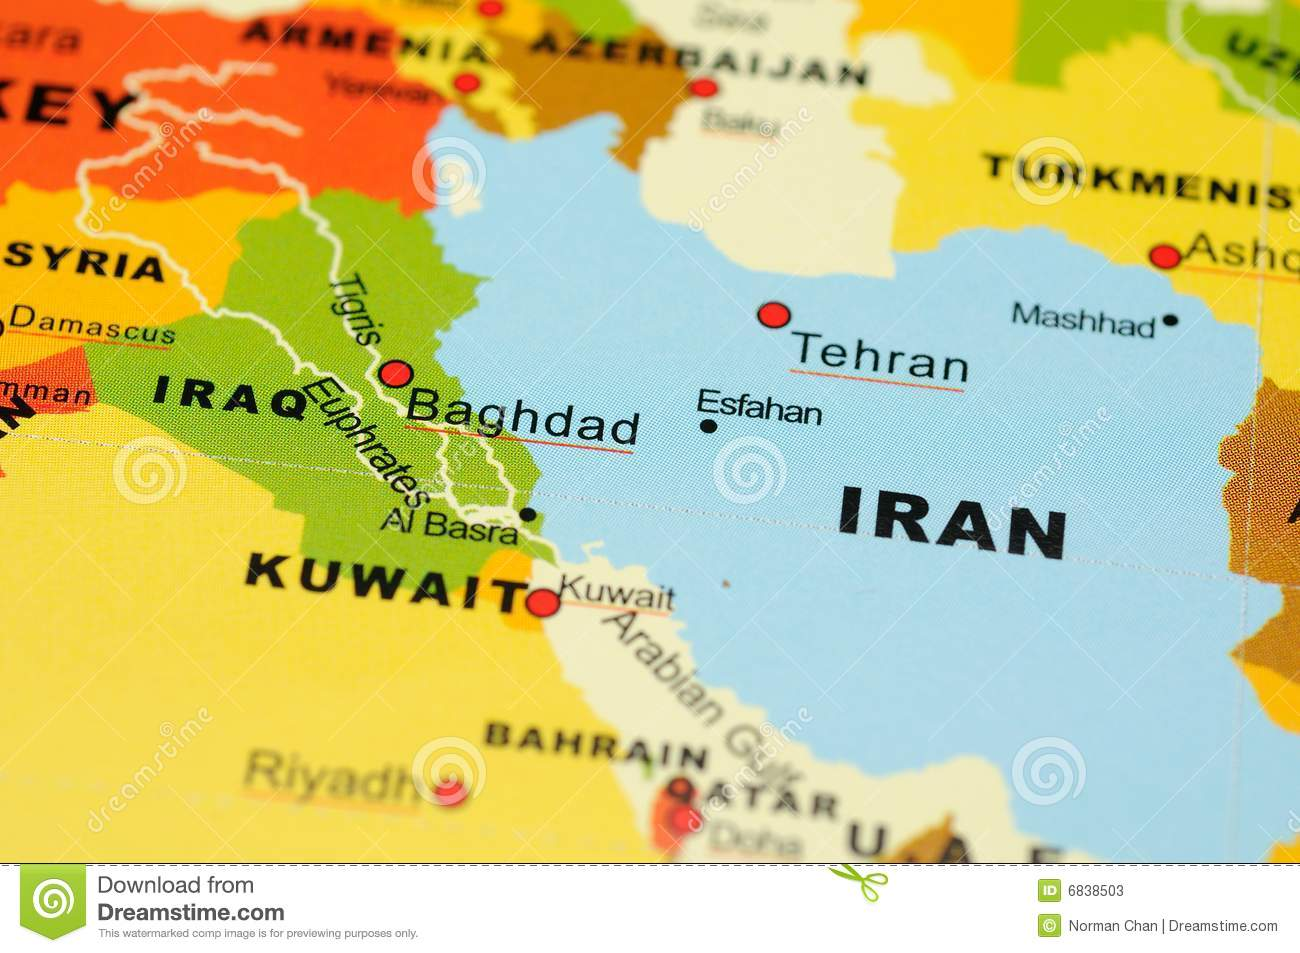 Iran And Iraq On Map Stock Photos - Image: 6838503